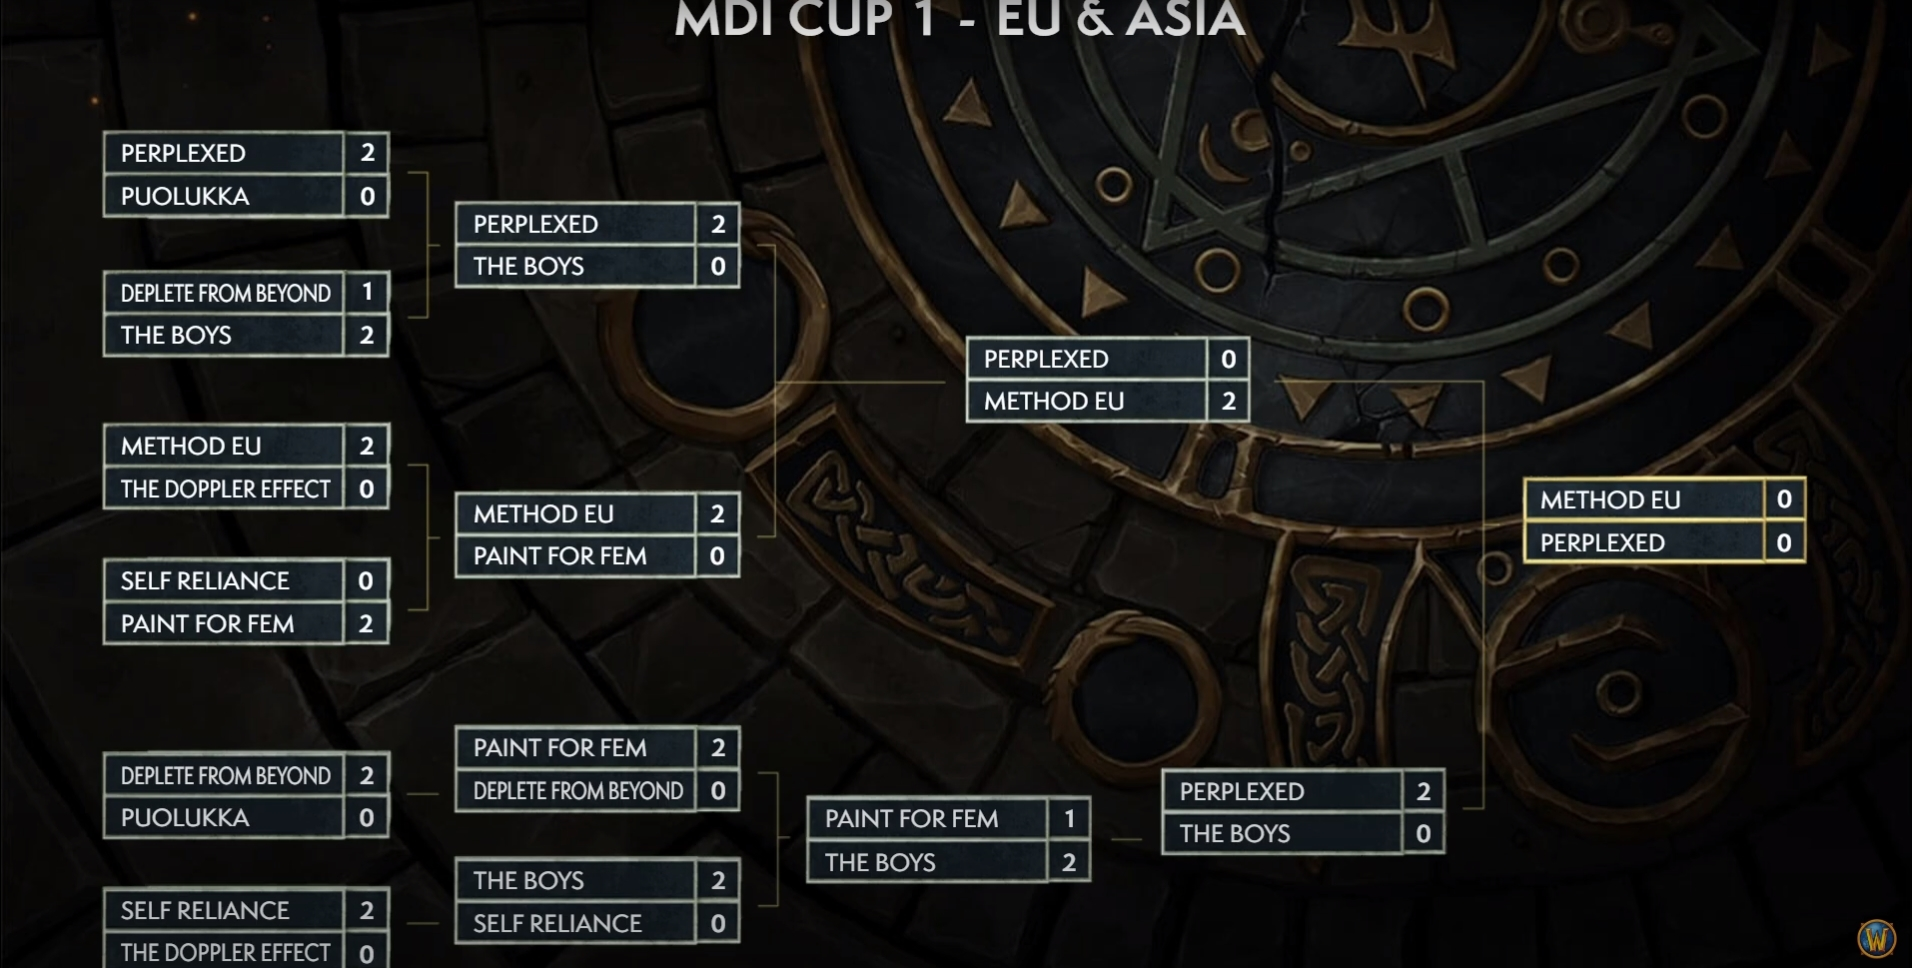 The Grand Final Of World Of Warcraft's Mythic Dungeon International's EU & Asia Cup 1 Is Complete!